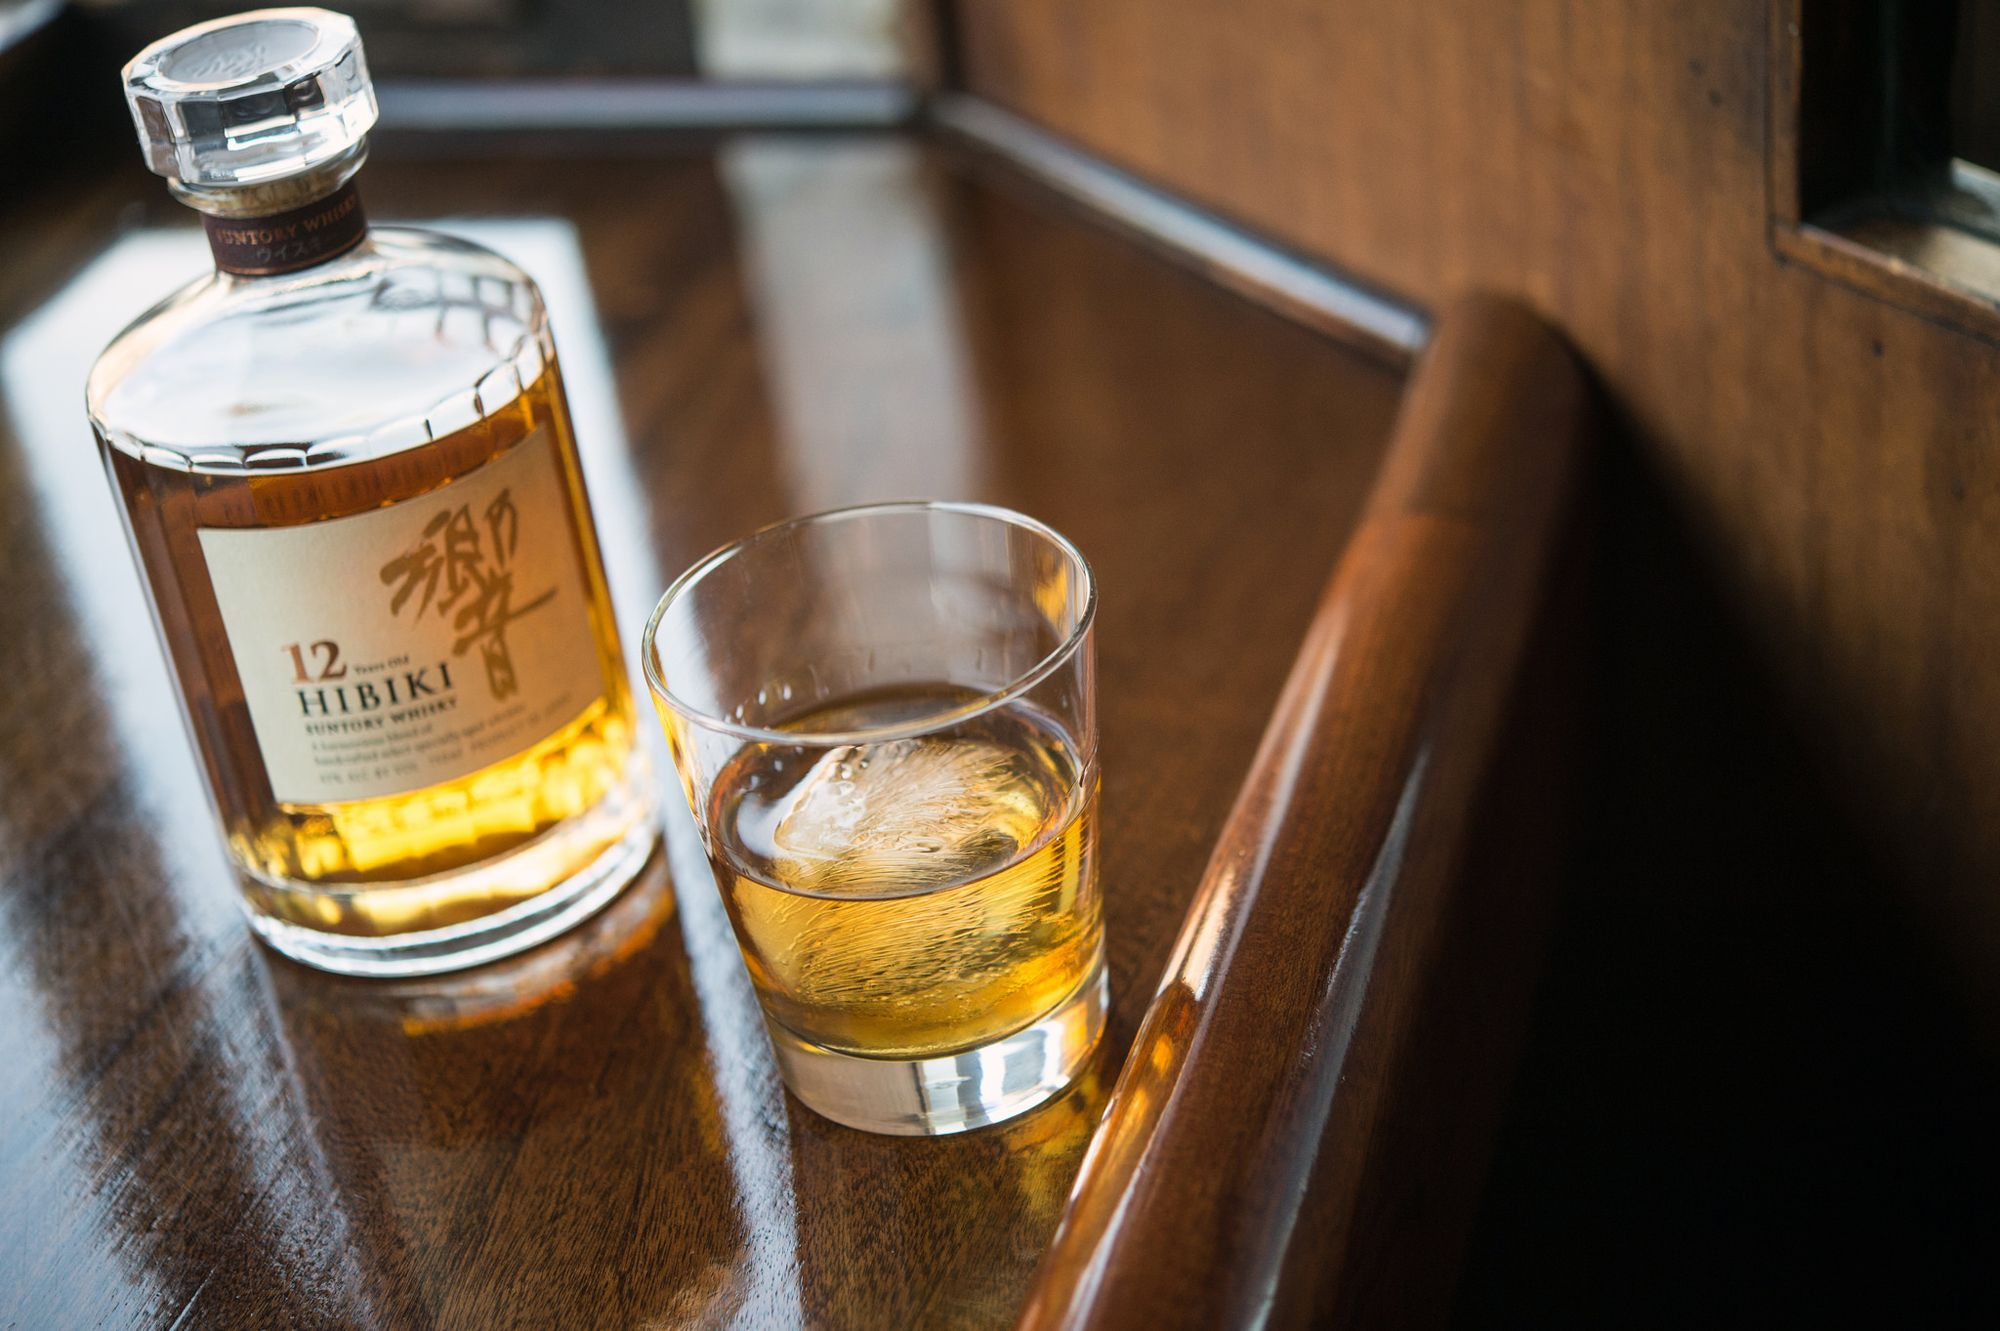 mc clelland singles Buy mcclellands single whisky online from loch fyne whiskies, the world's most respected scotch whisky specialist next working day delivery in the uk.